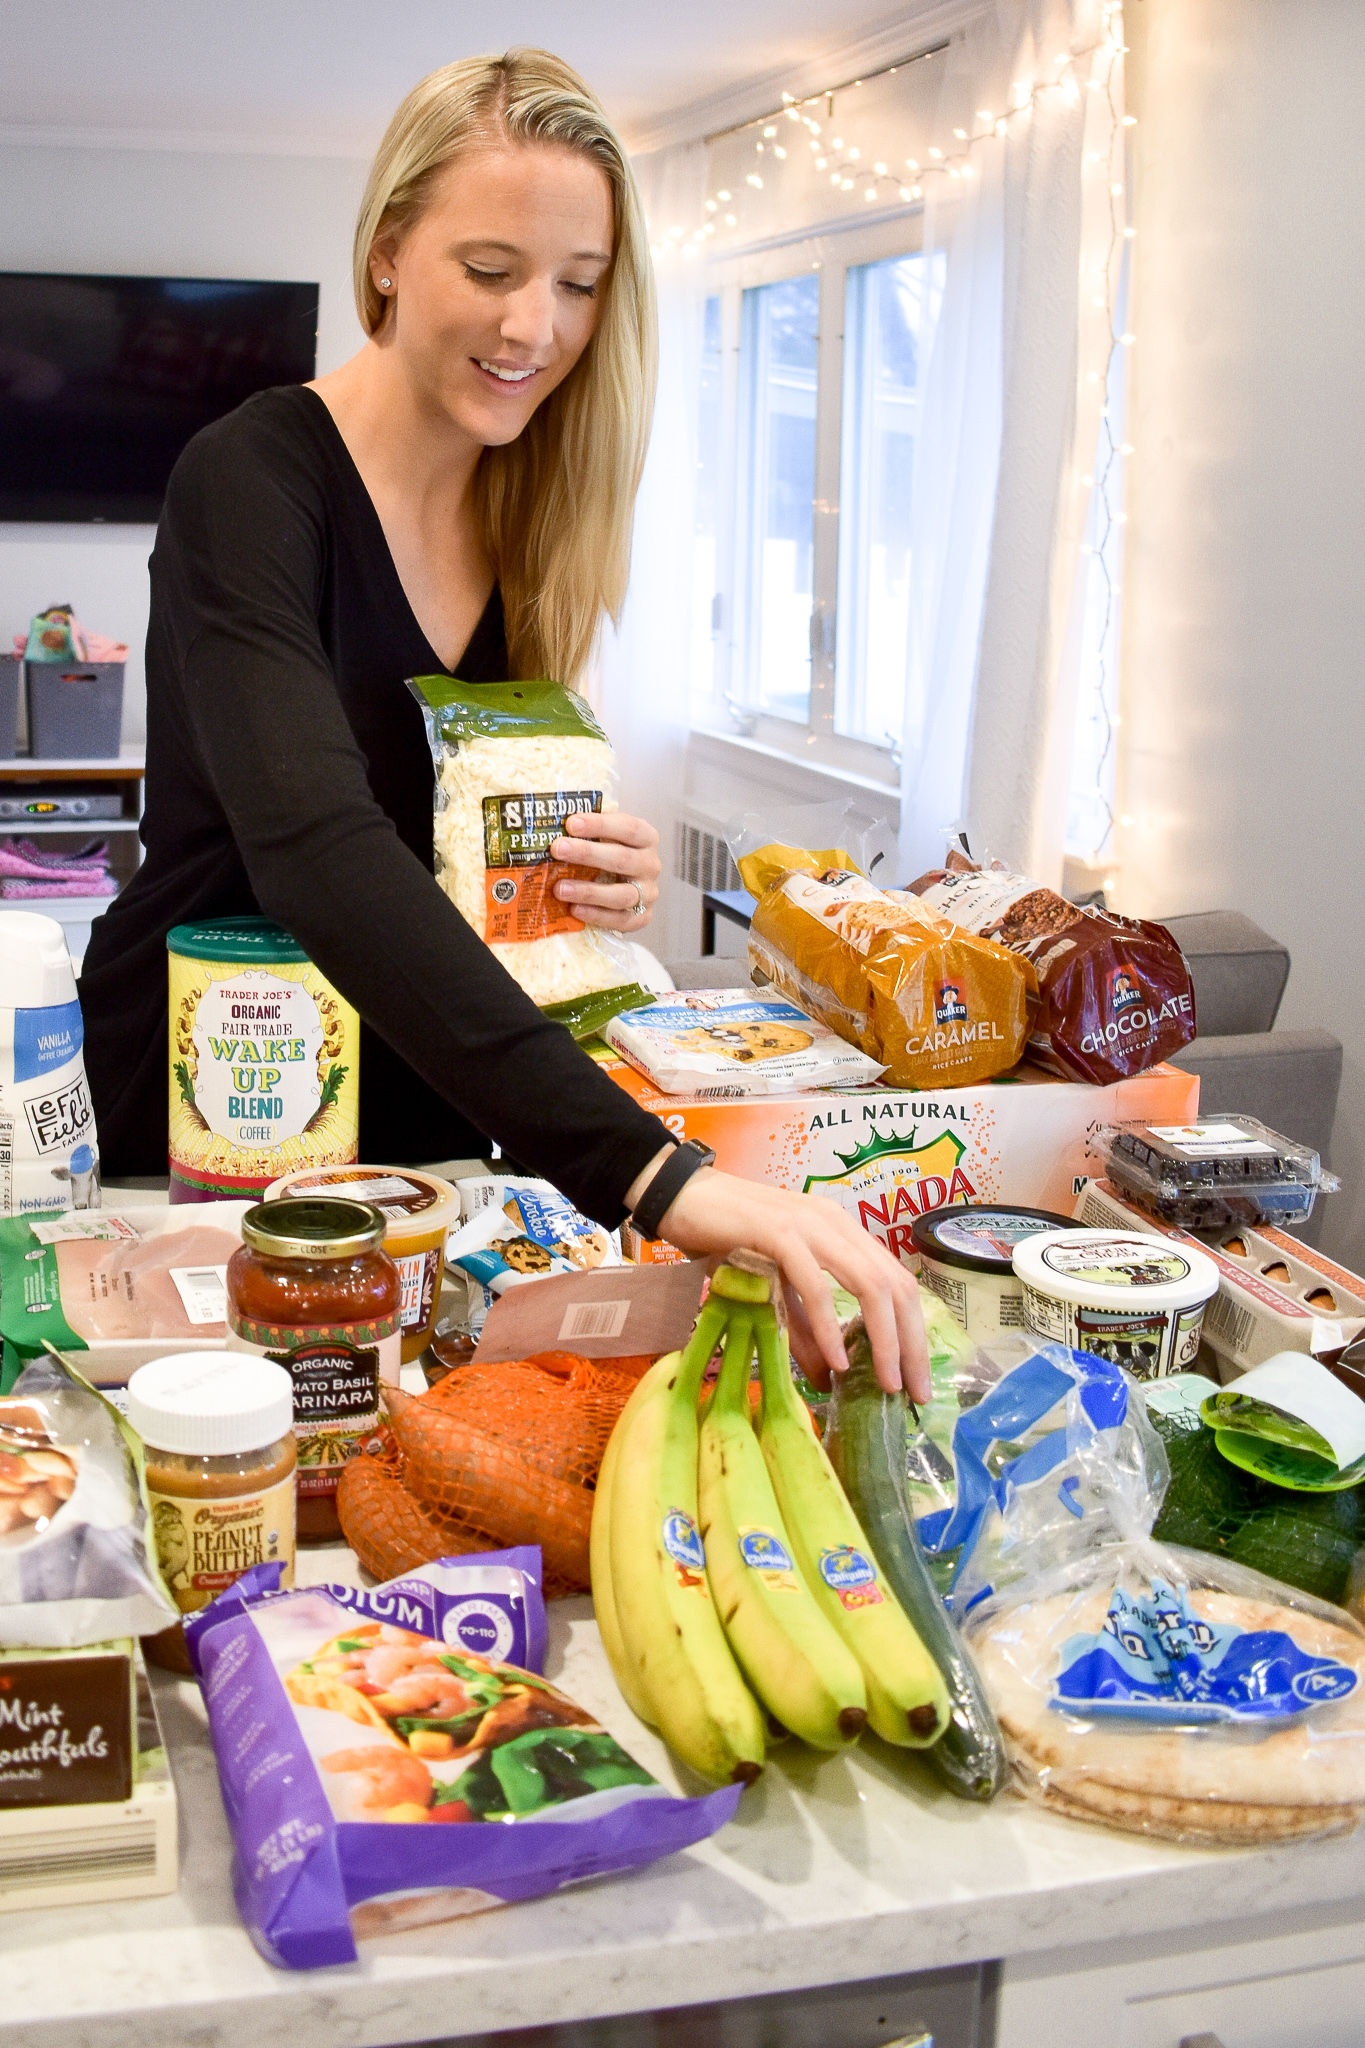 Tired of dieting + want a strategy that actually works? Read this article to learn how to lose weight + eat healthier without all the restrictions + rules!   Eat healthier for beginners, how to eat healthy, how to lose weight, how to eat healthy food every day, how to eat healthy and lose weight, eating healthy tips, eating healthy plans, healthy lifestyle tips, healthy lifestyle changes, healthy lifestyle habits, healthy lifestyle choices #healthylifestyle #healthylife #healthyeating #healthyeatingplan #healthyhabits